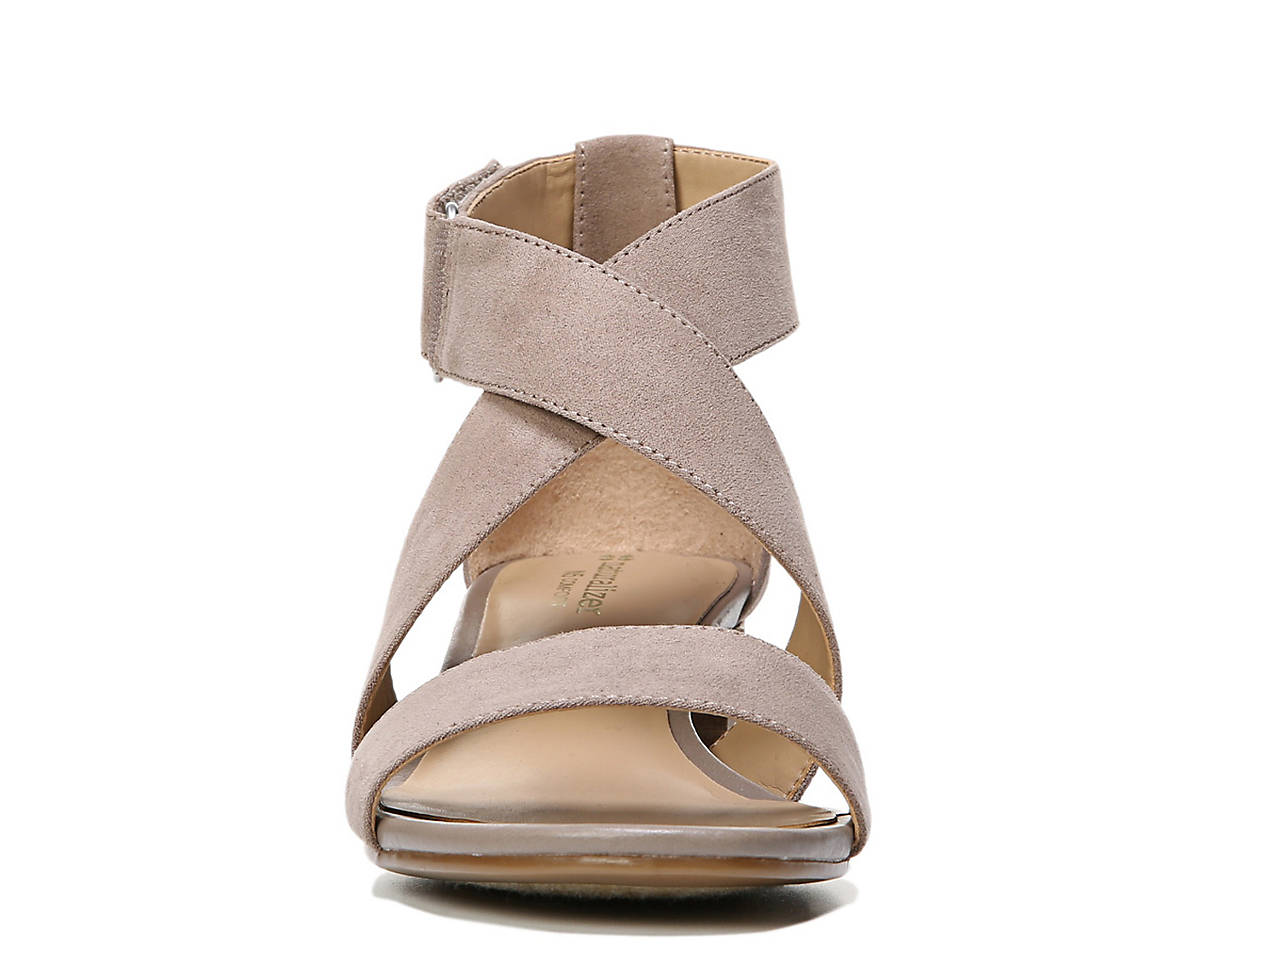 f9ebb8caf16 Naturalizer Adele Sandal Women s Shoes